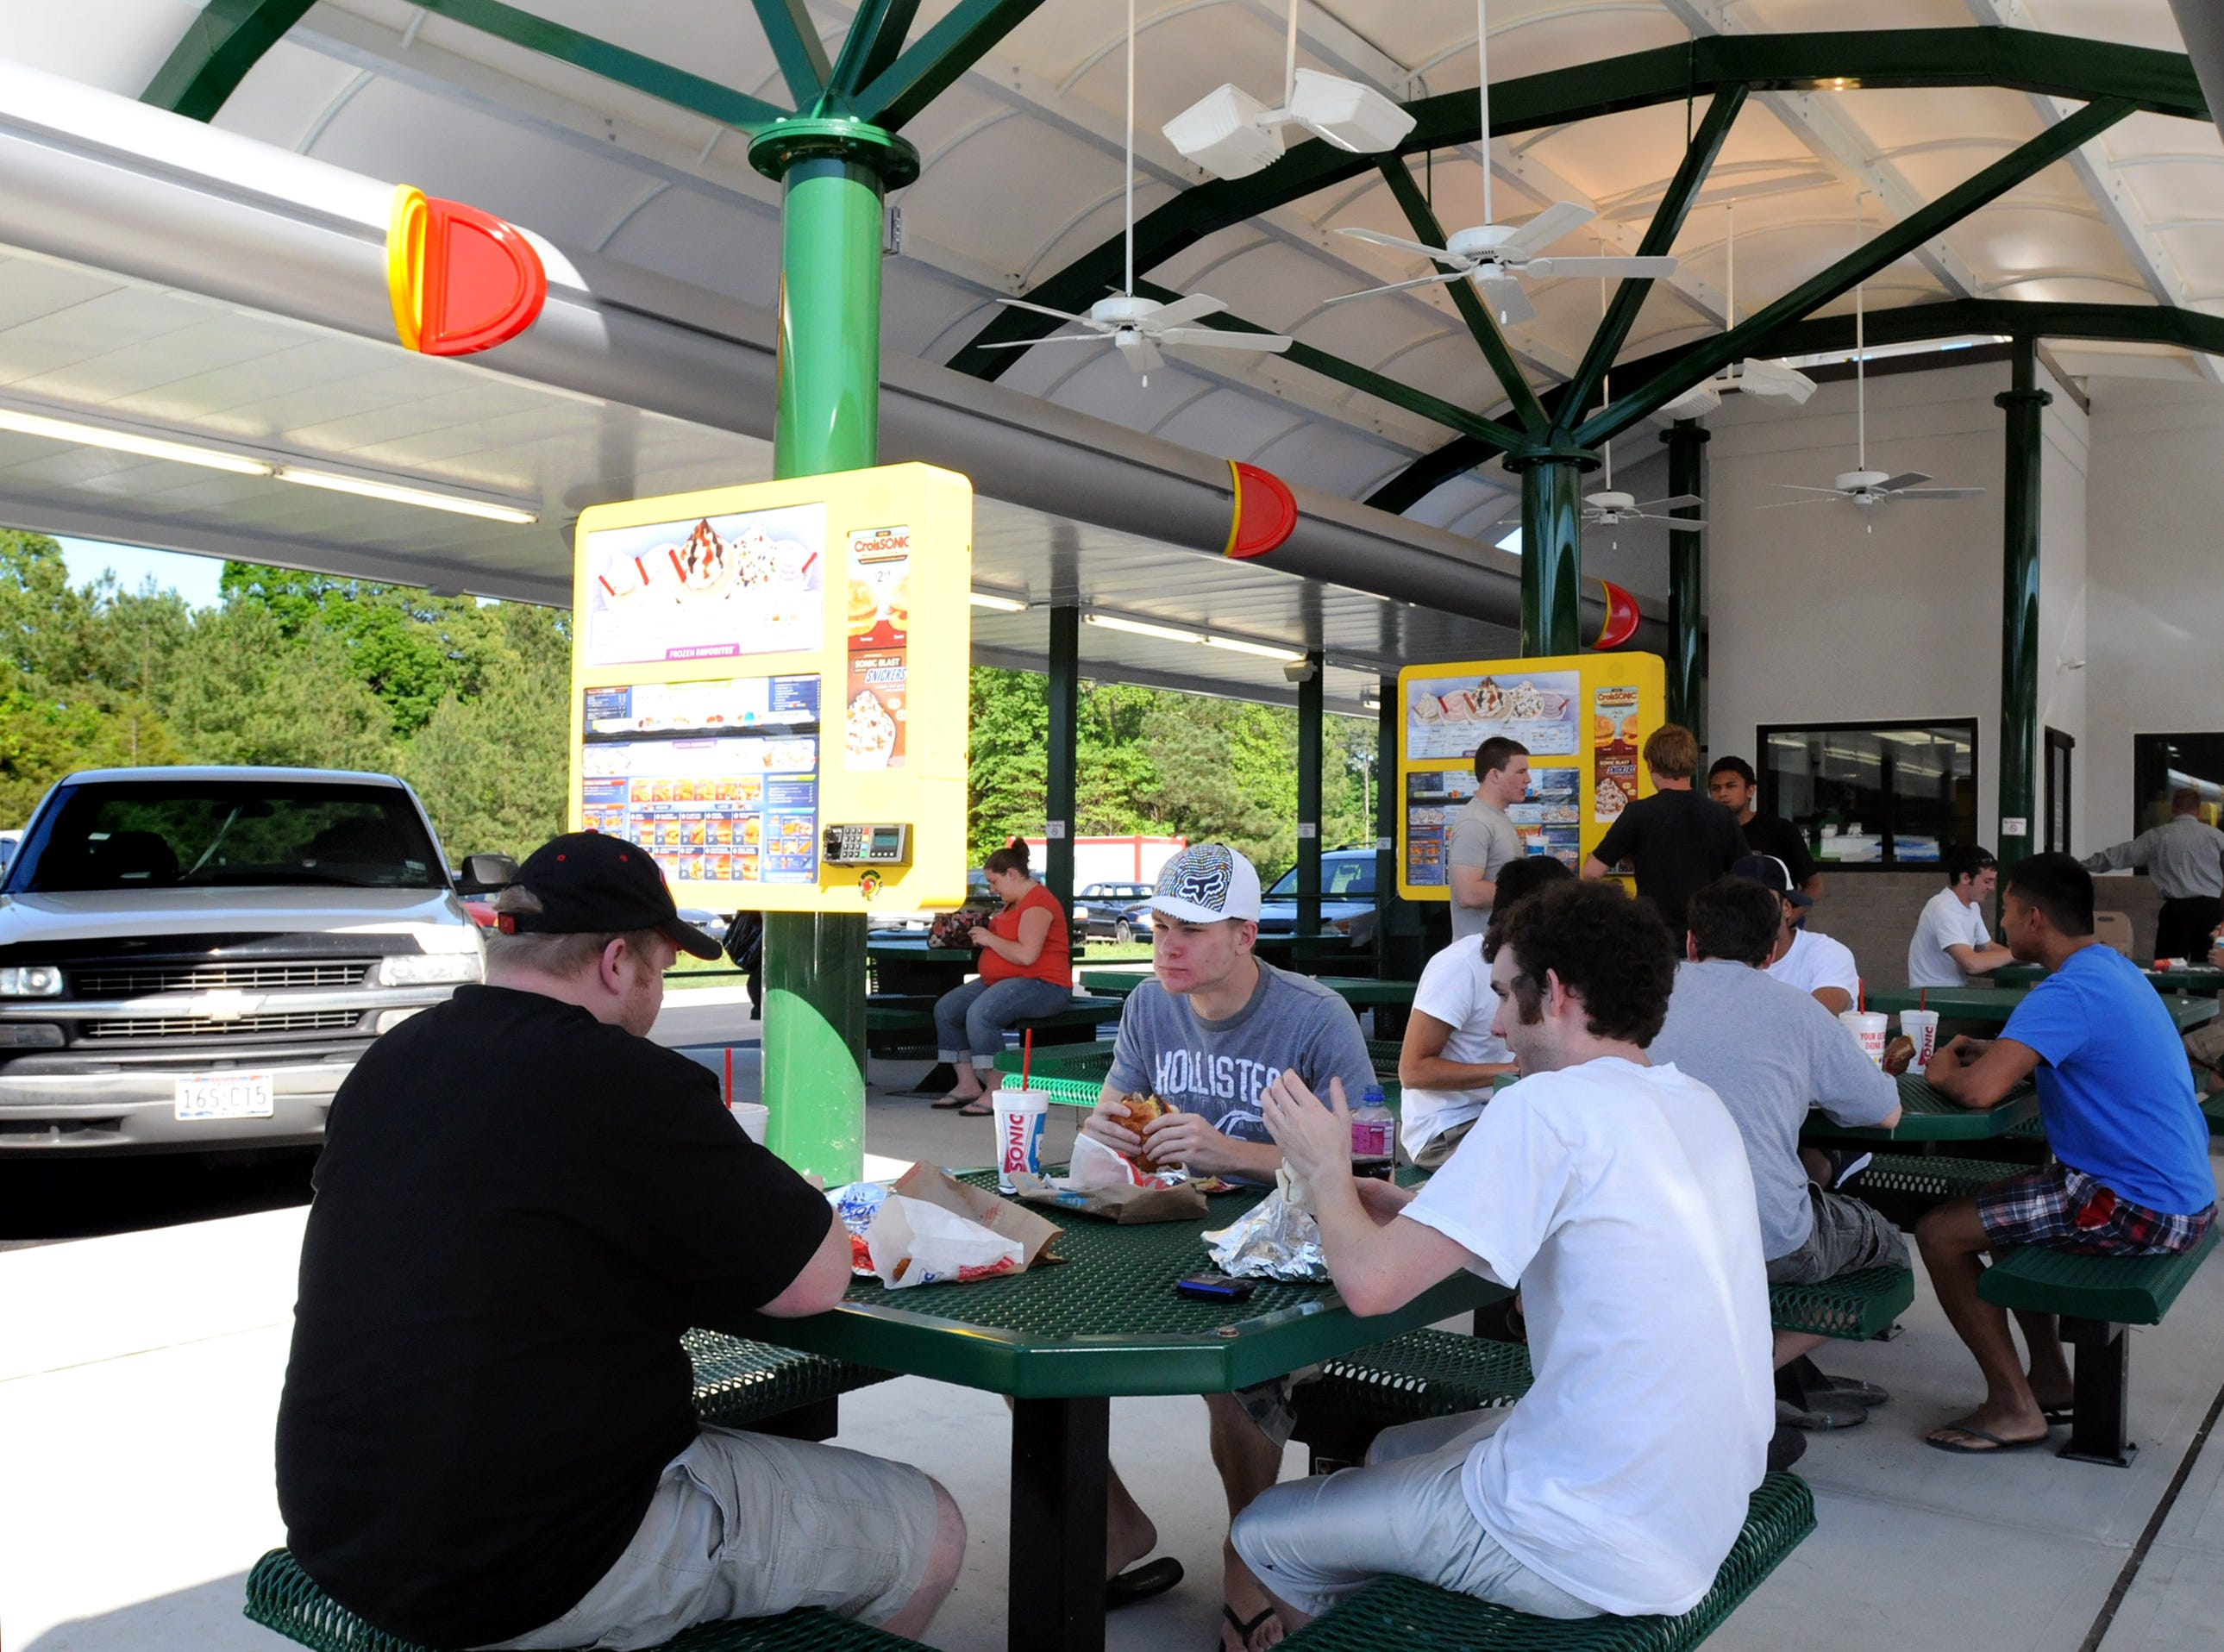 Customers flocked to the newly opened Sonic Drive-In in Fruitland on May 19, 2009. Company officials said in December 2018 that the site would not re-open after a fire months before.